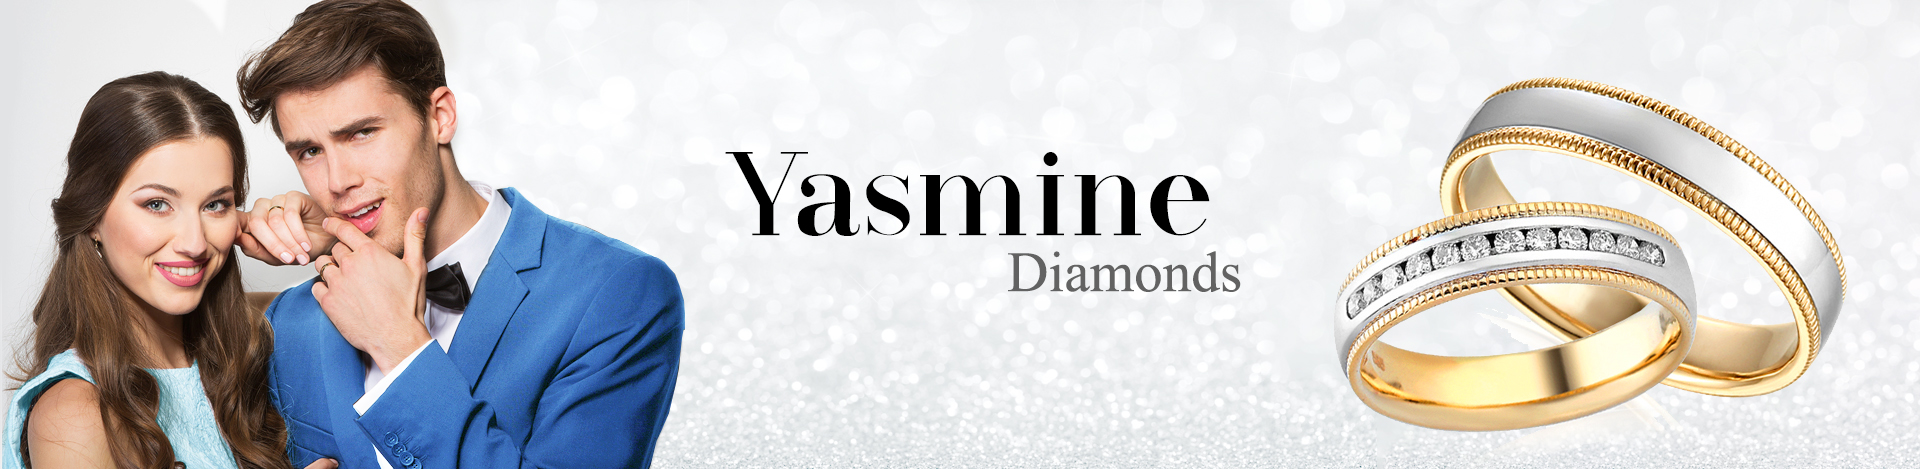 yasmine diamonds eheringe